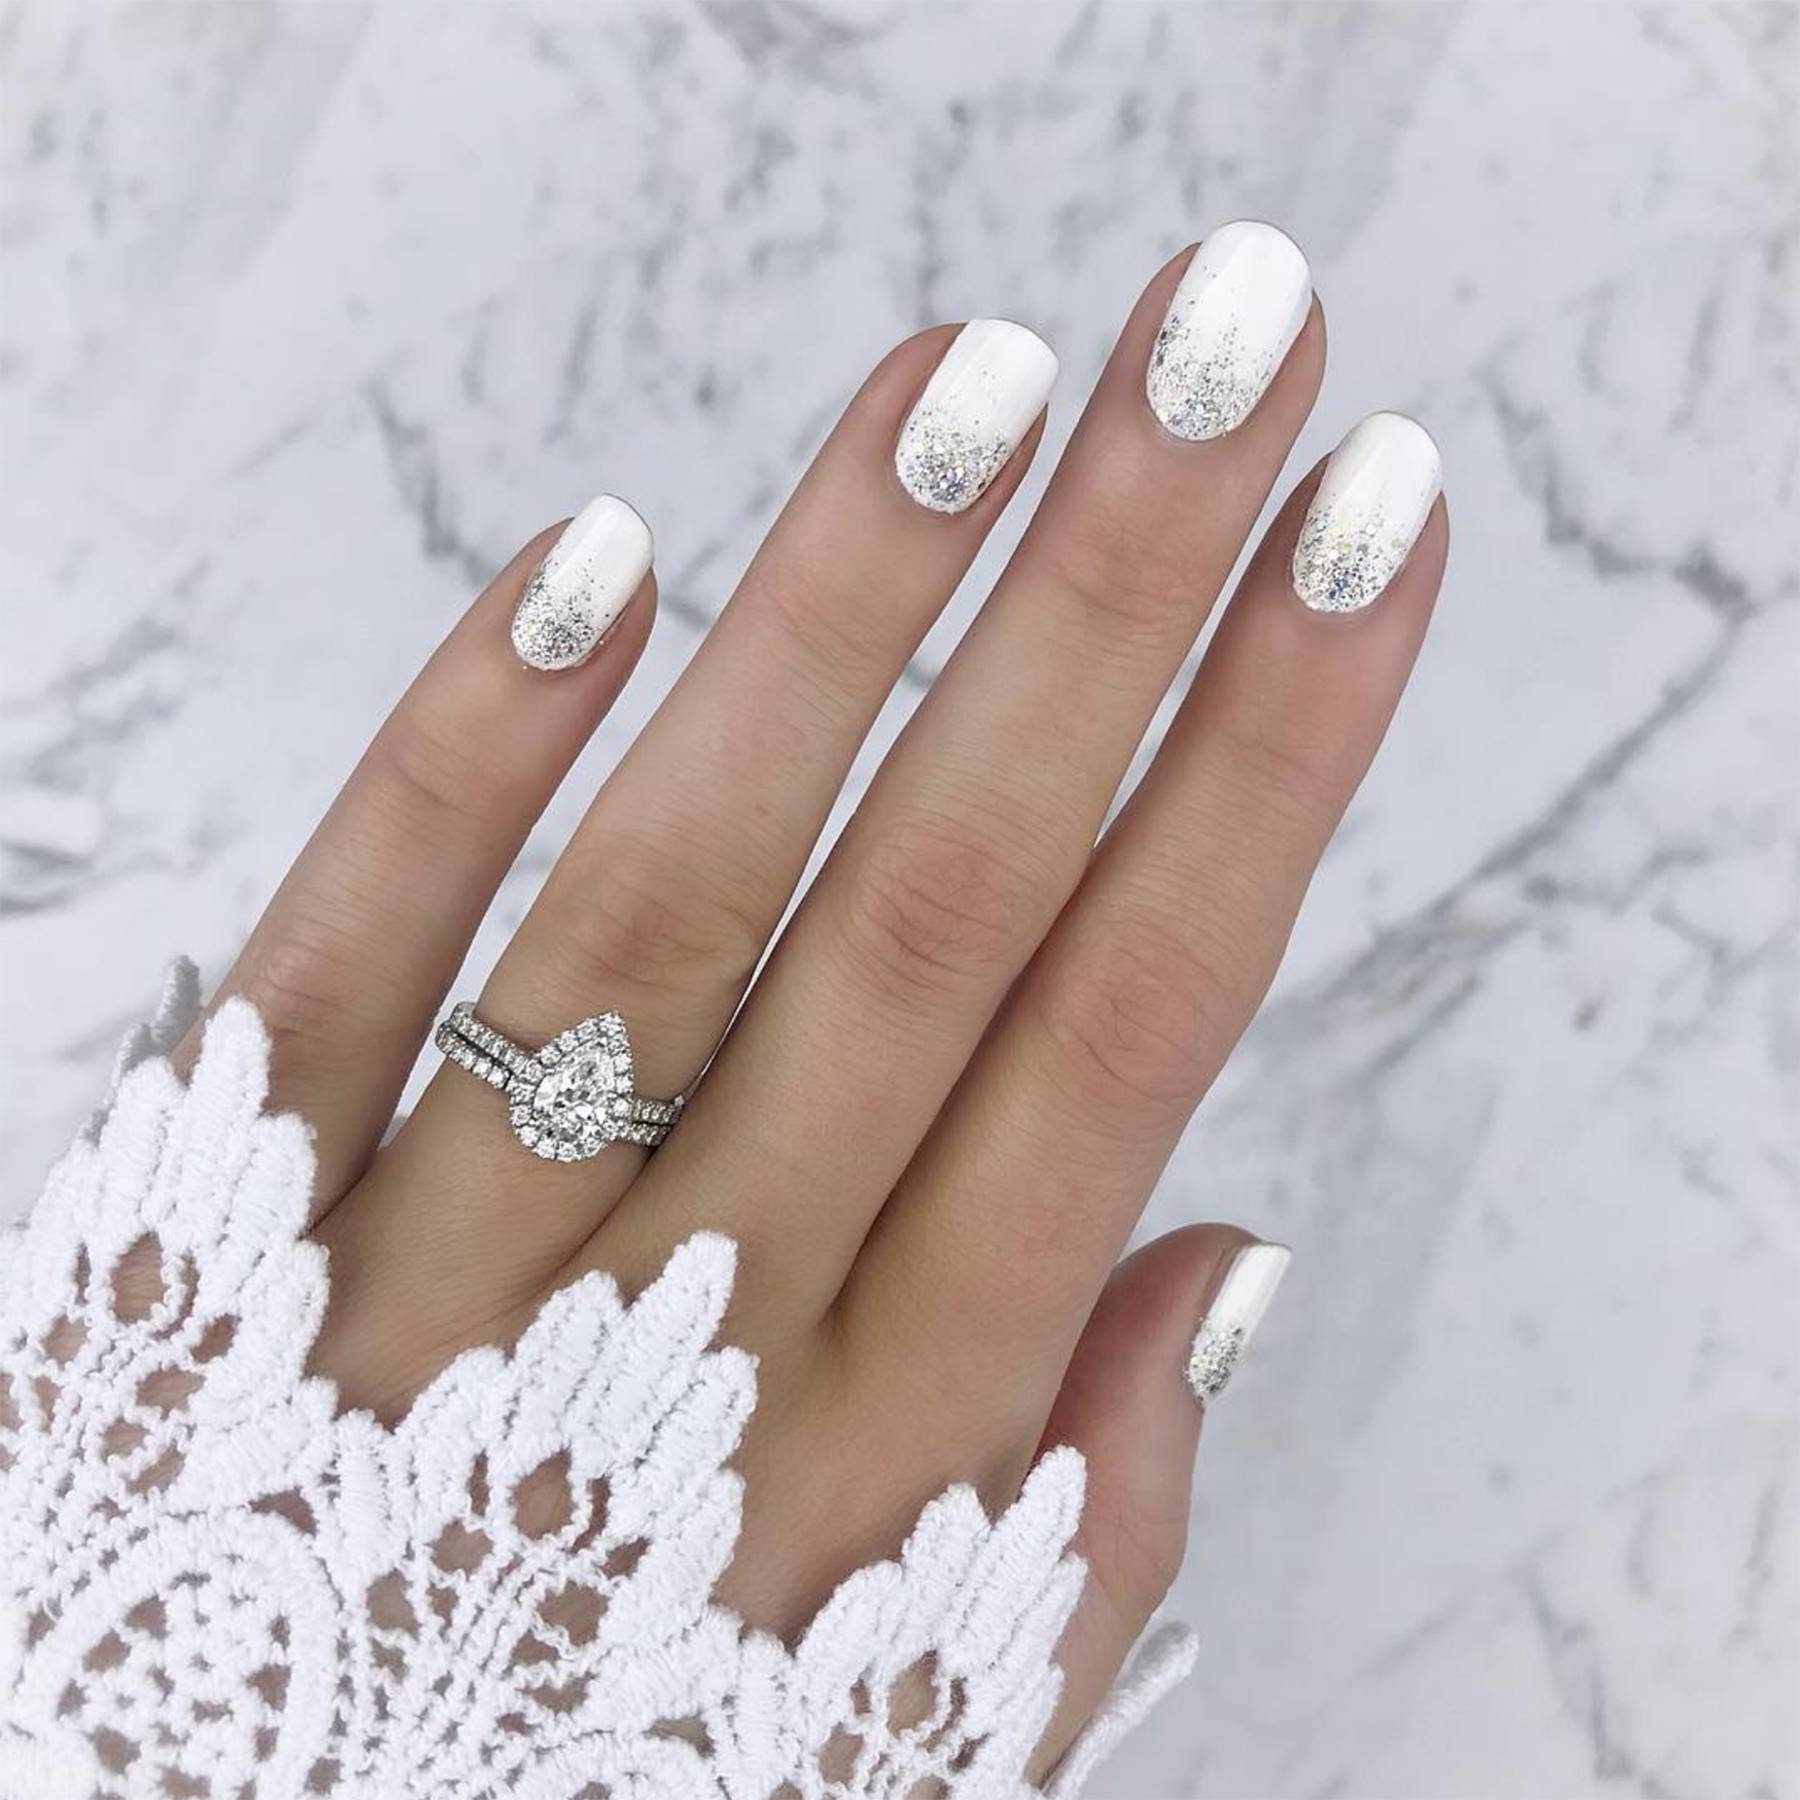 Wedding Nails: Beautiful Nail Art Ideas For Your Big Day | Glamour UK